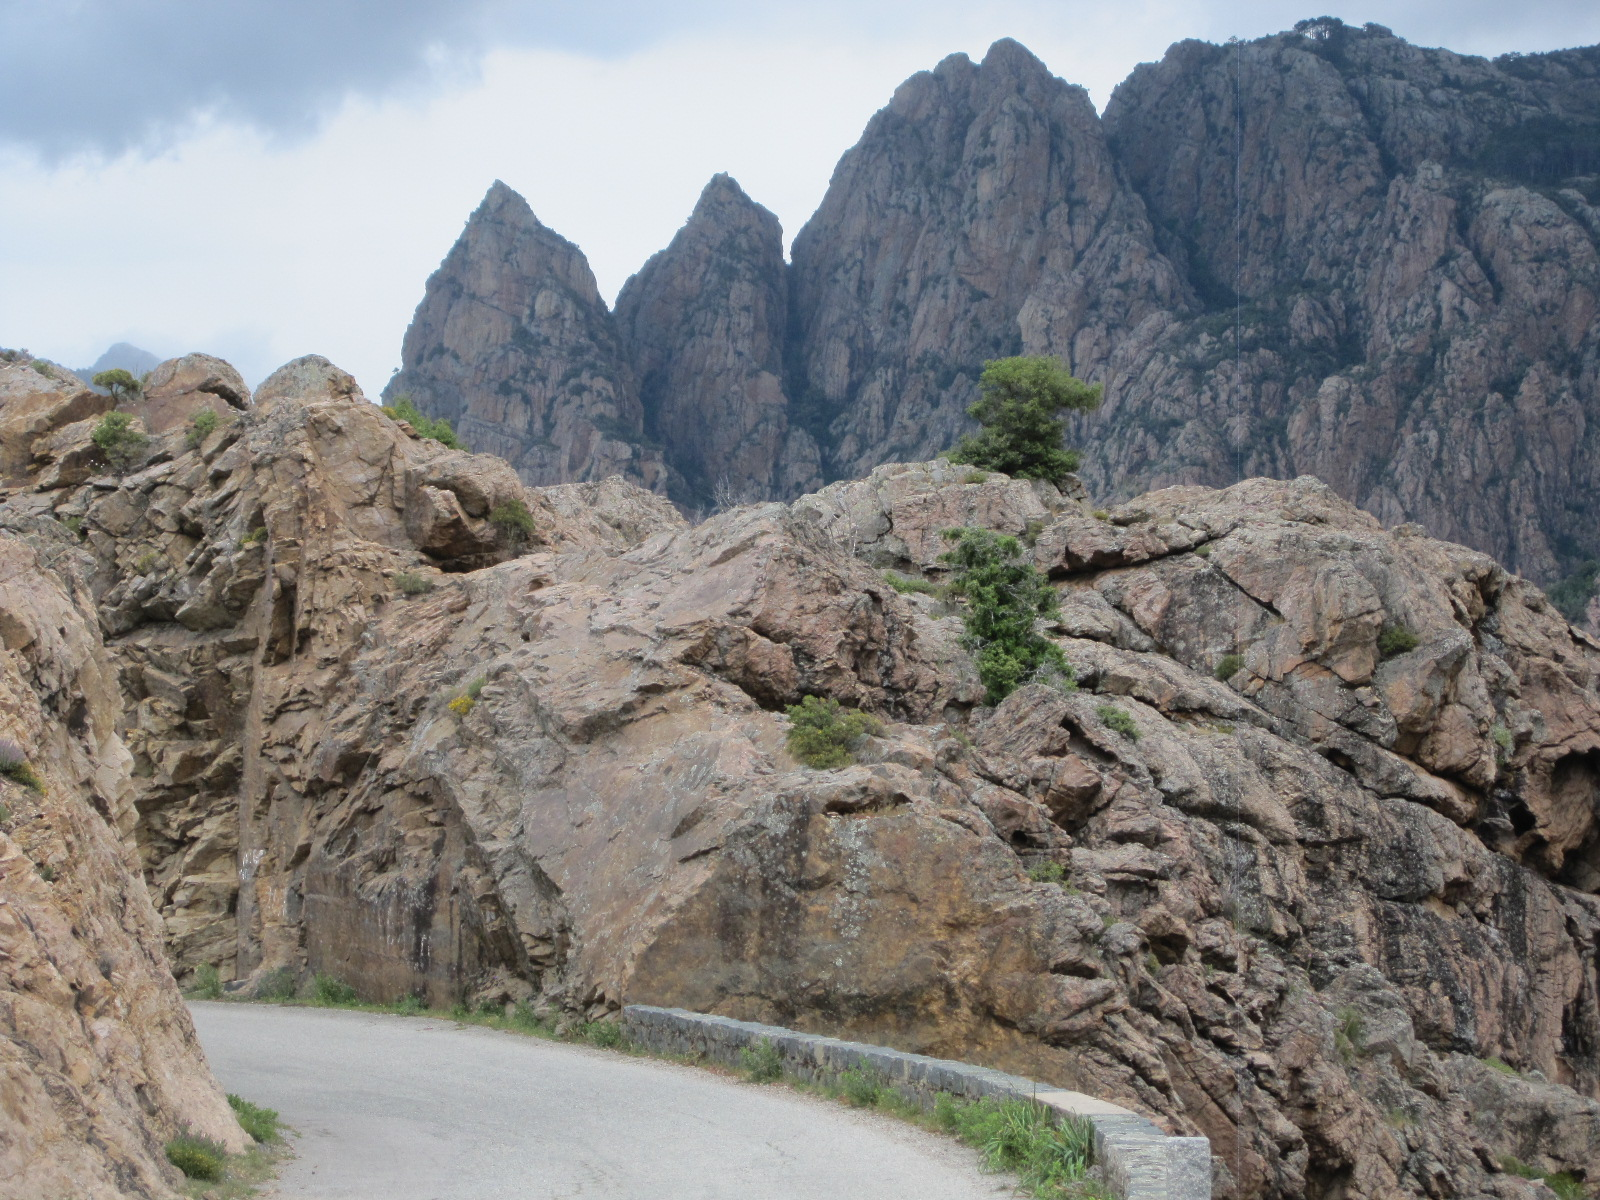 Rock show near Porto. Not Les Callanches, but nearly as impressive. Such a typical view of what happens in Corsica when you're on a bike!